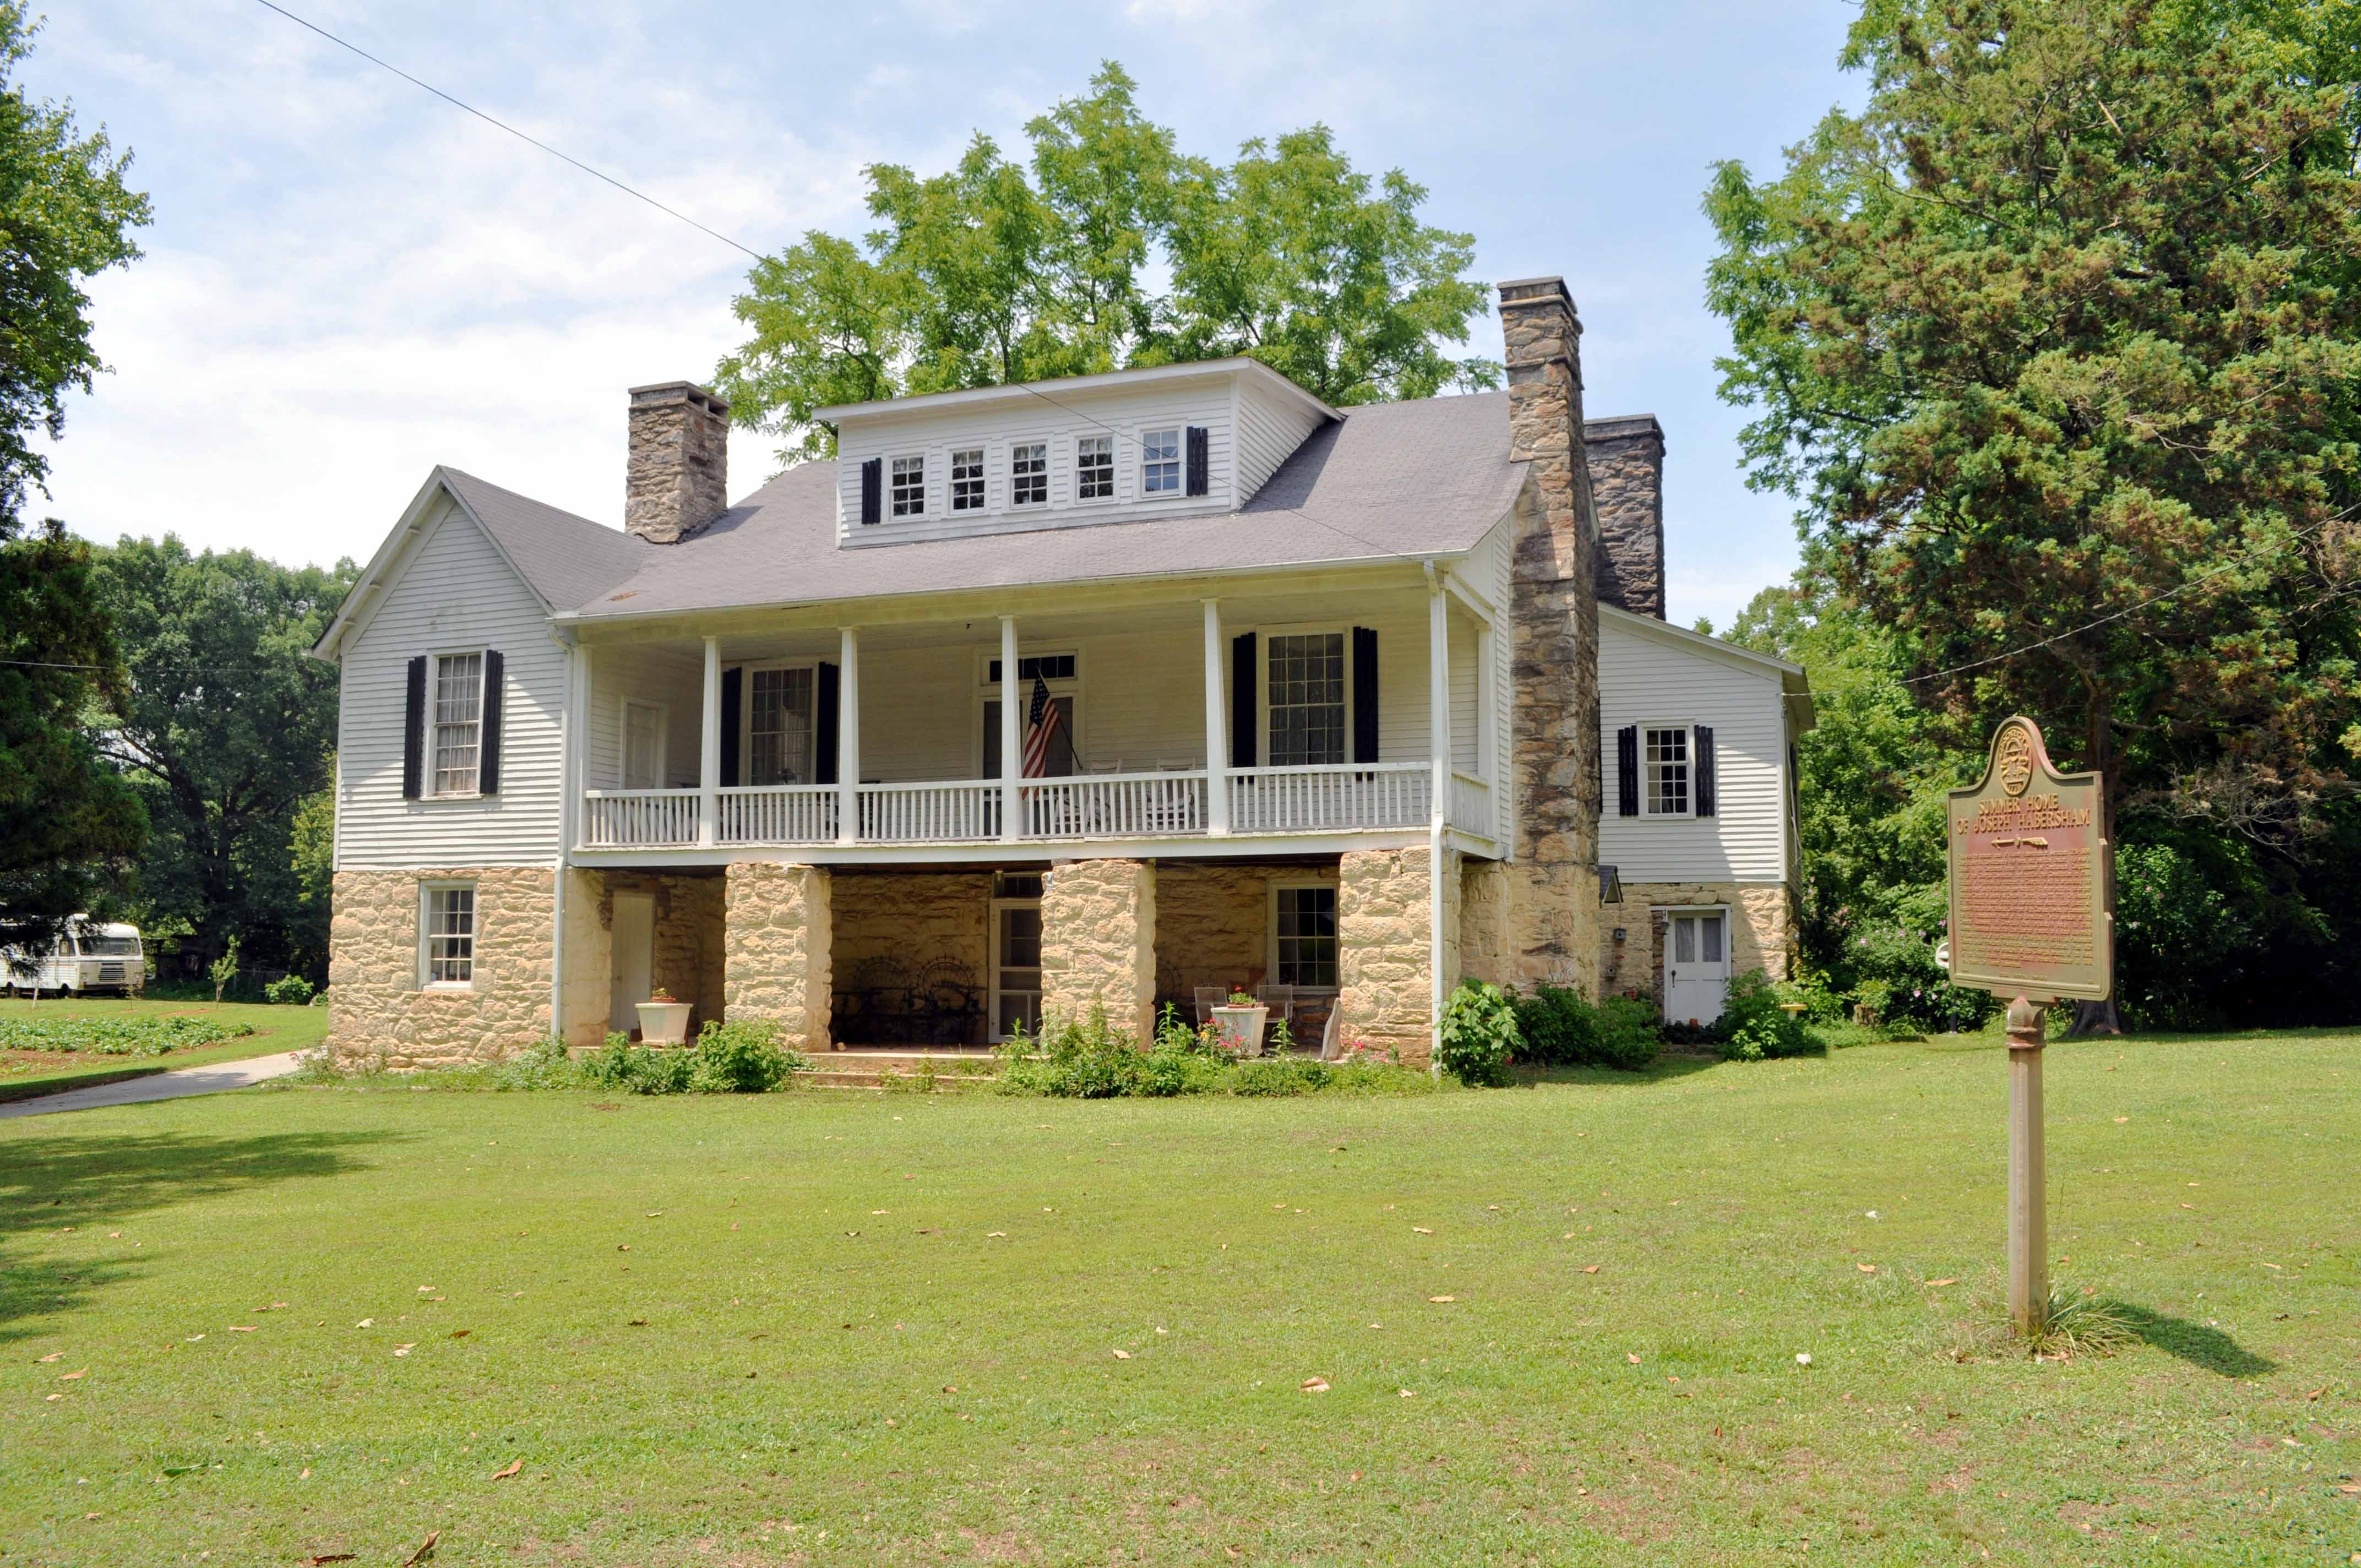 Summer Home of Joseph Habersham